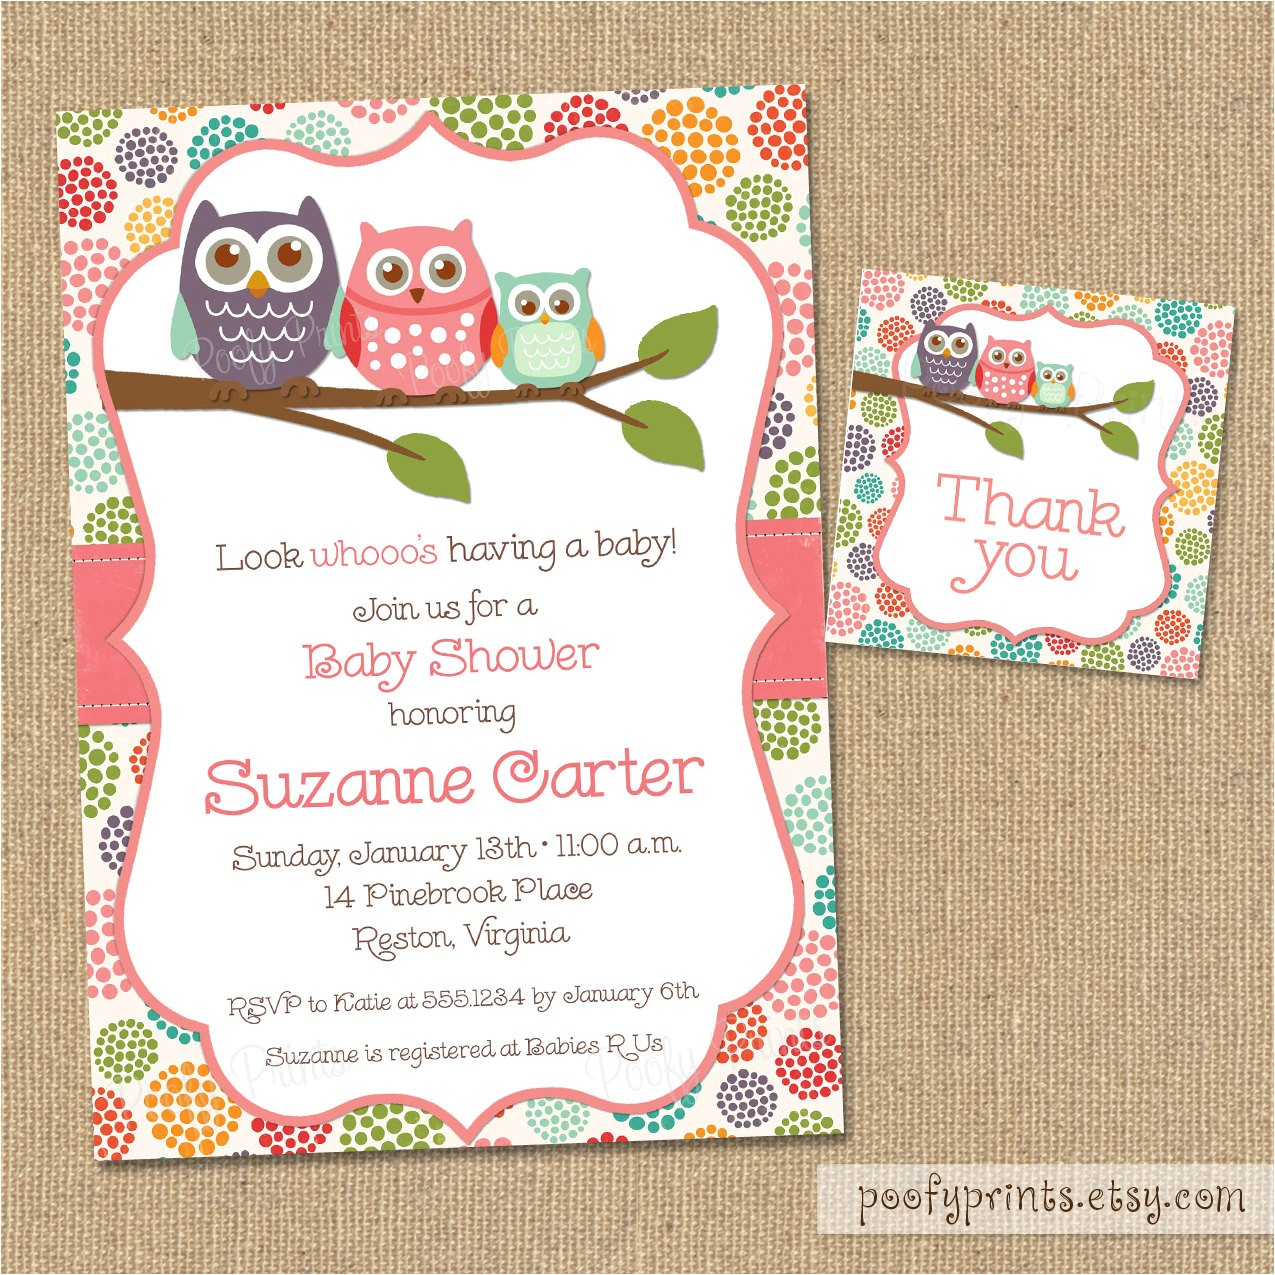 design free printable baby shower invitations at babies r us